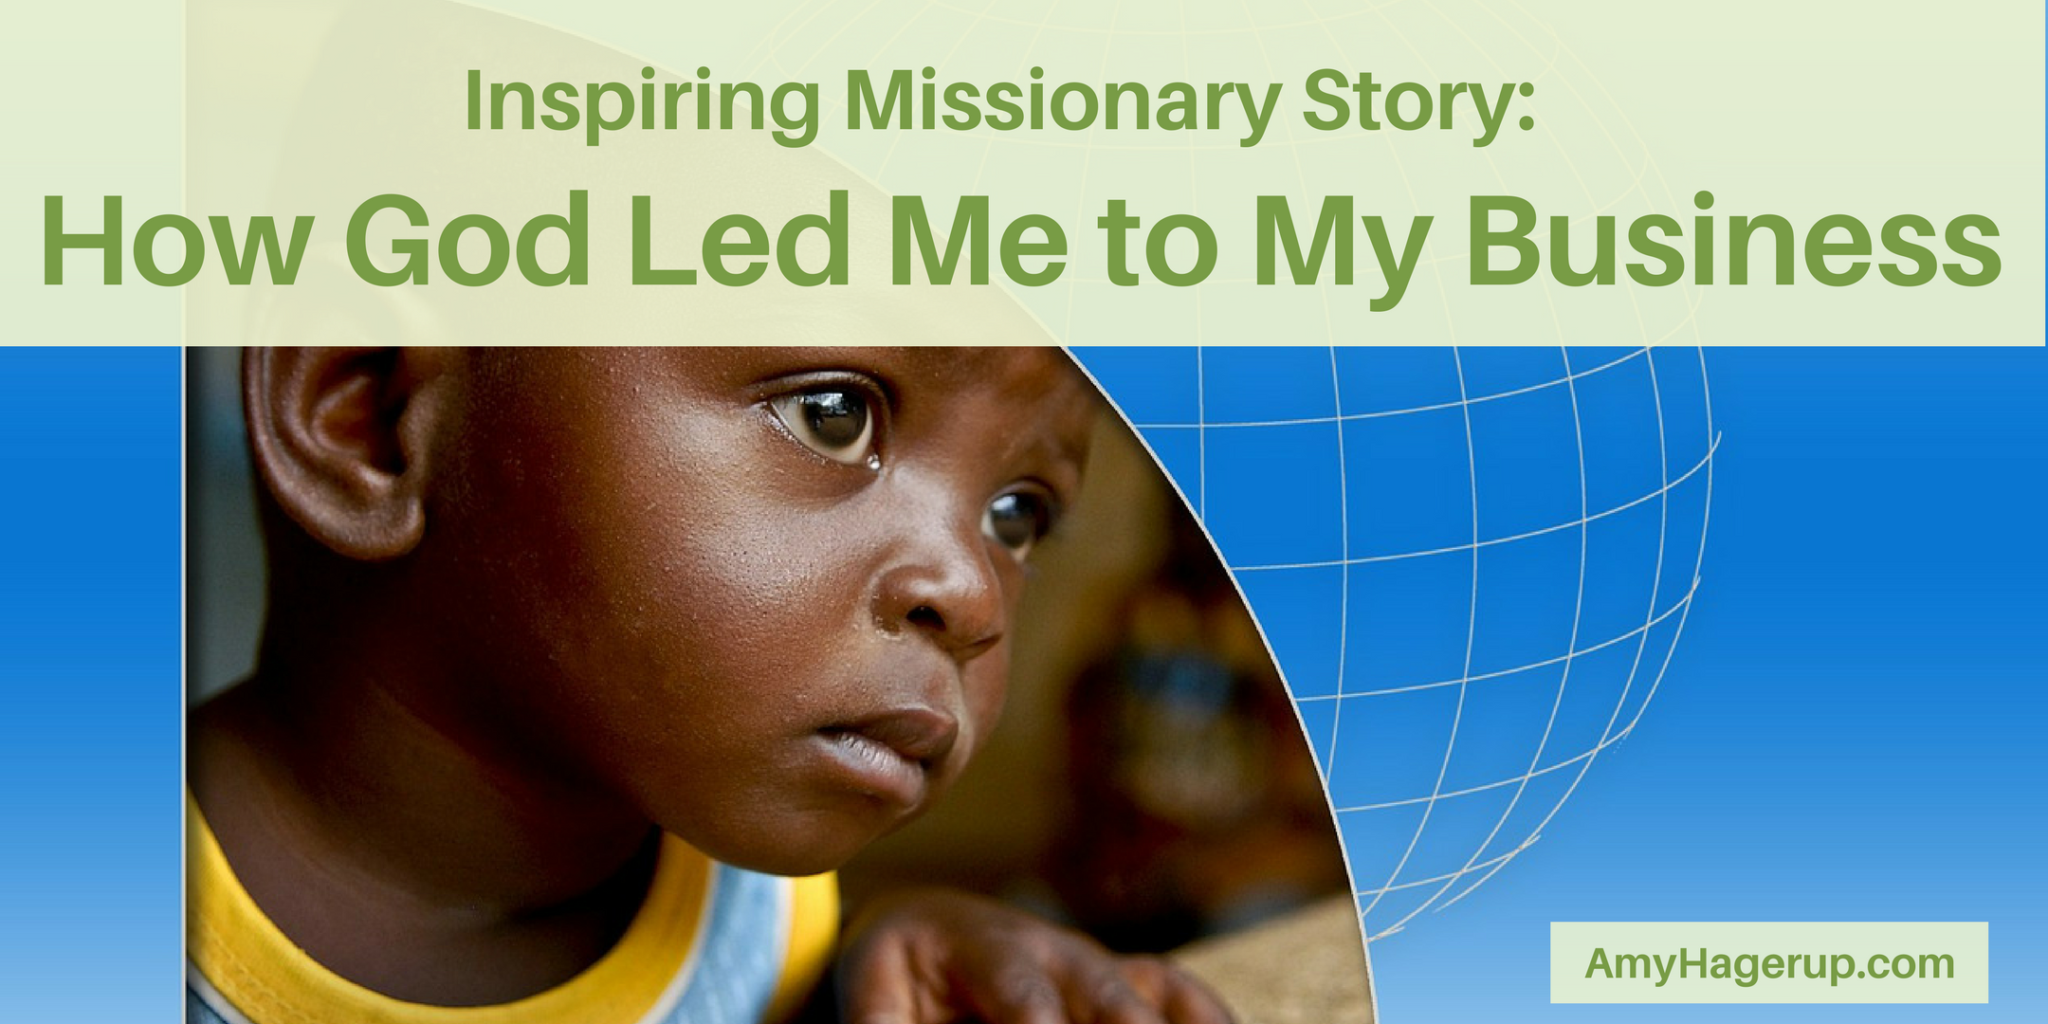 Check out this inspiring missionary story as to how God led me to my health business.